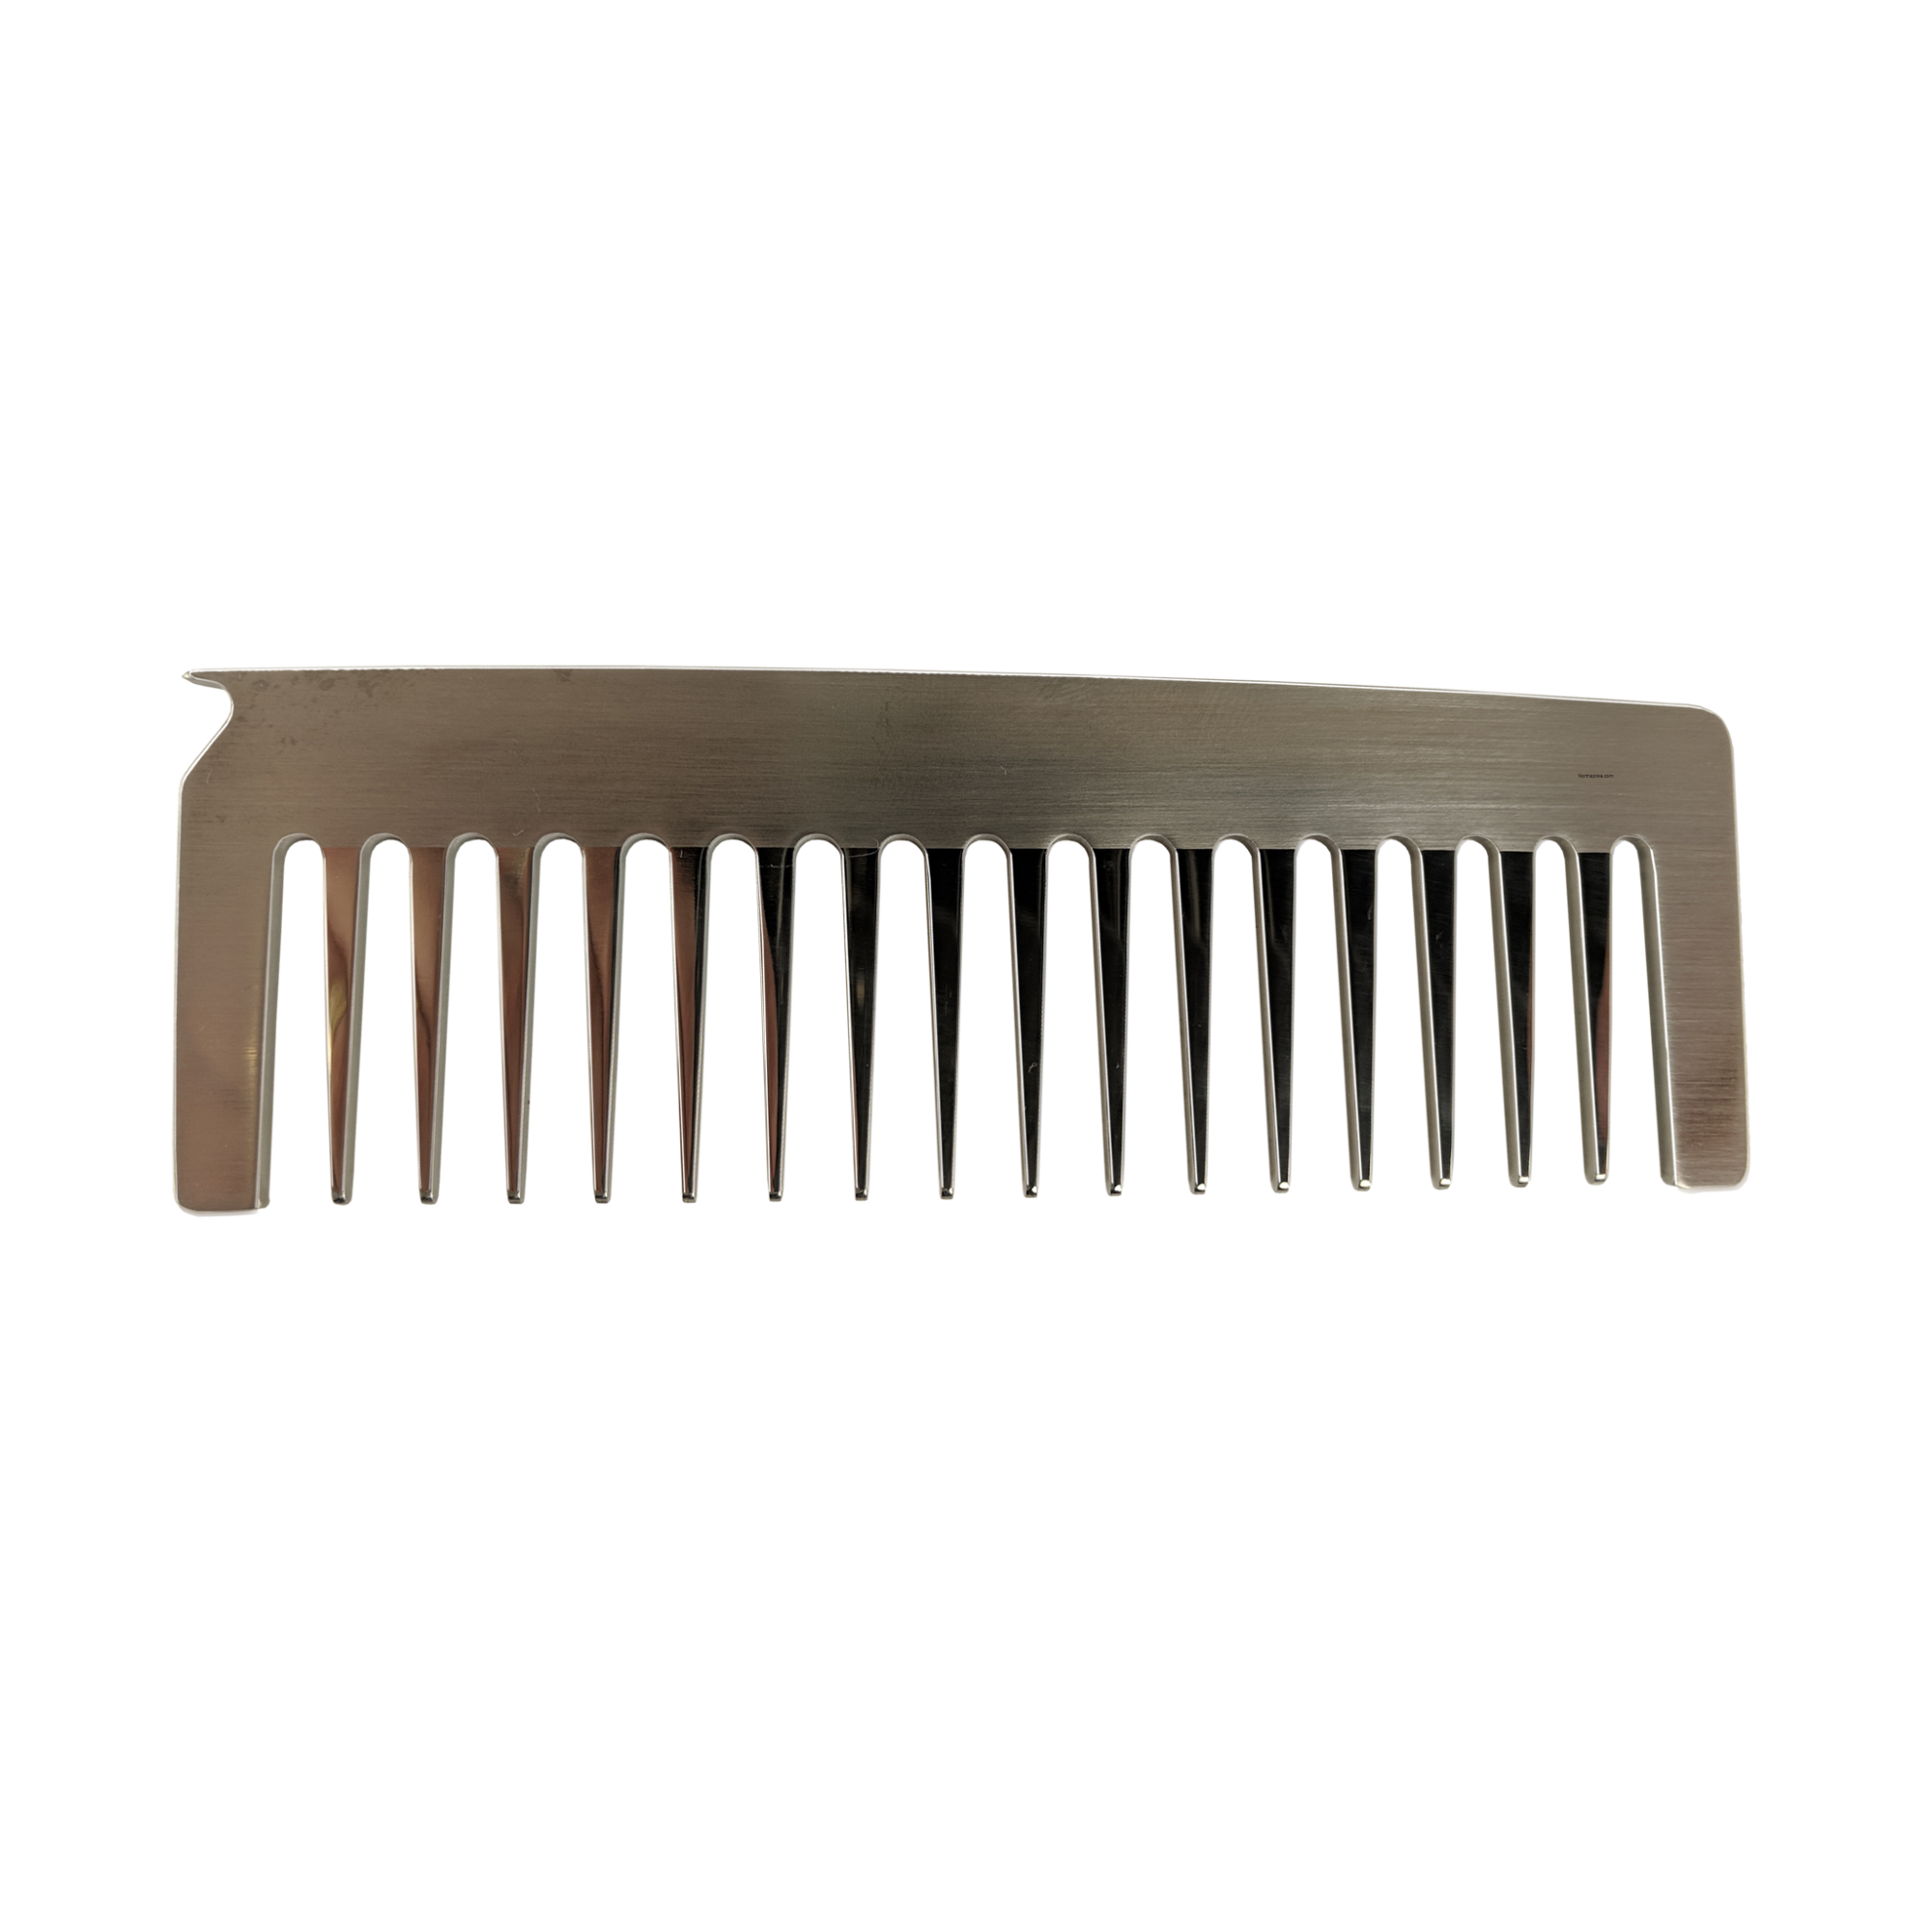 Northspoke Hair Comb No.2